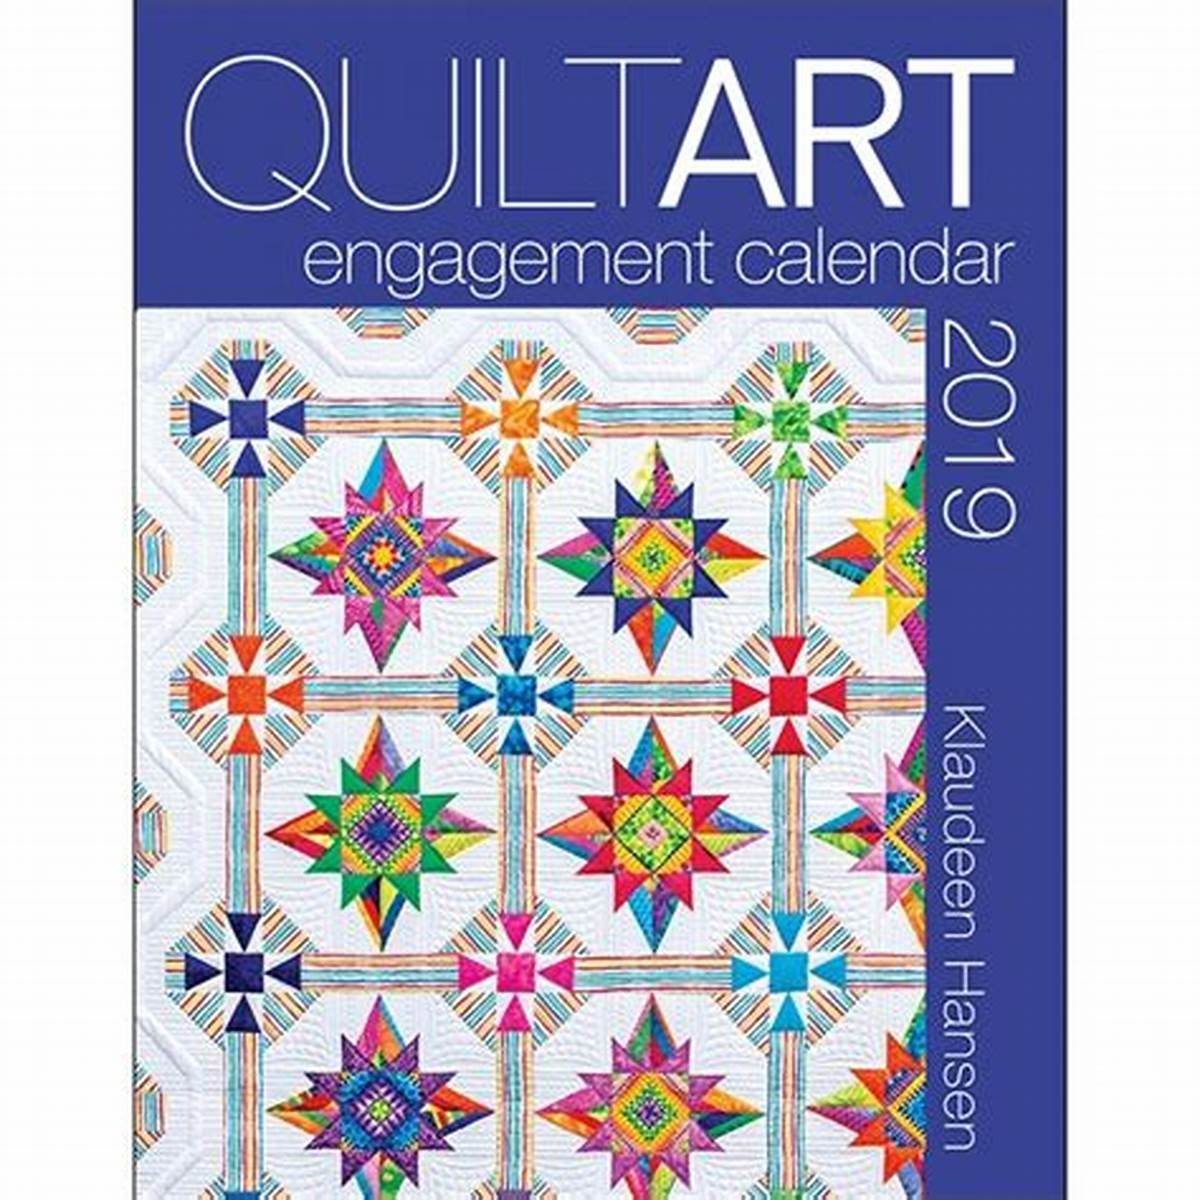 2019 Quilt Art Engagement Calendar AQS 11318